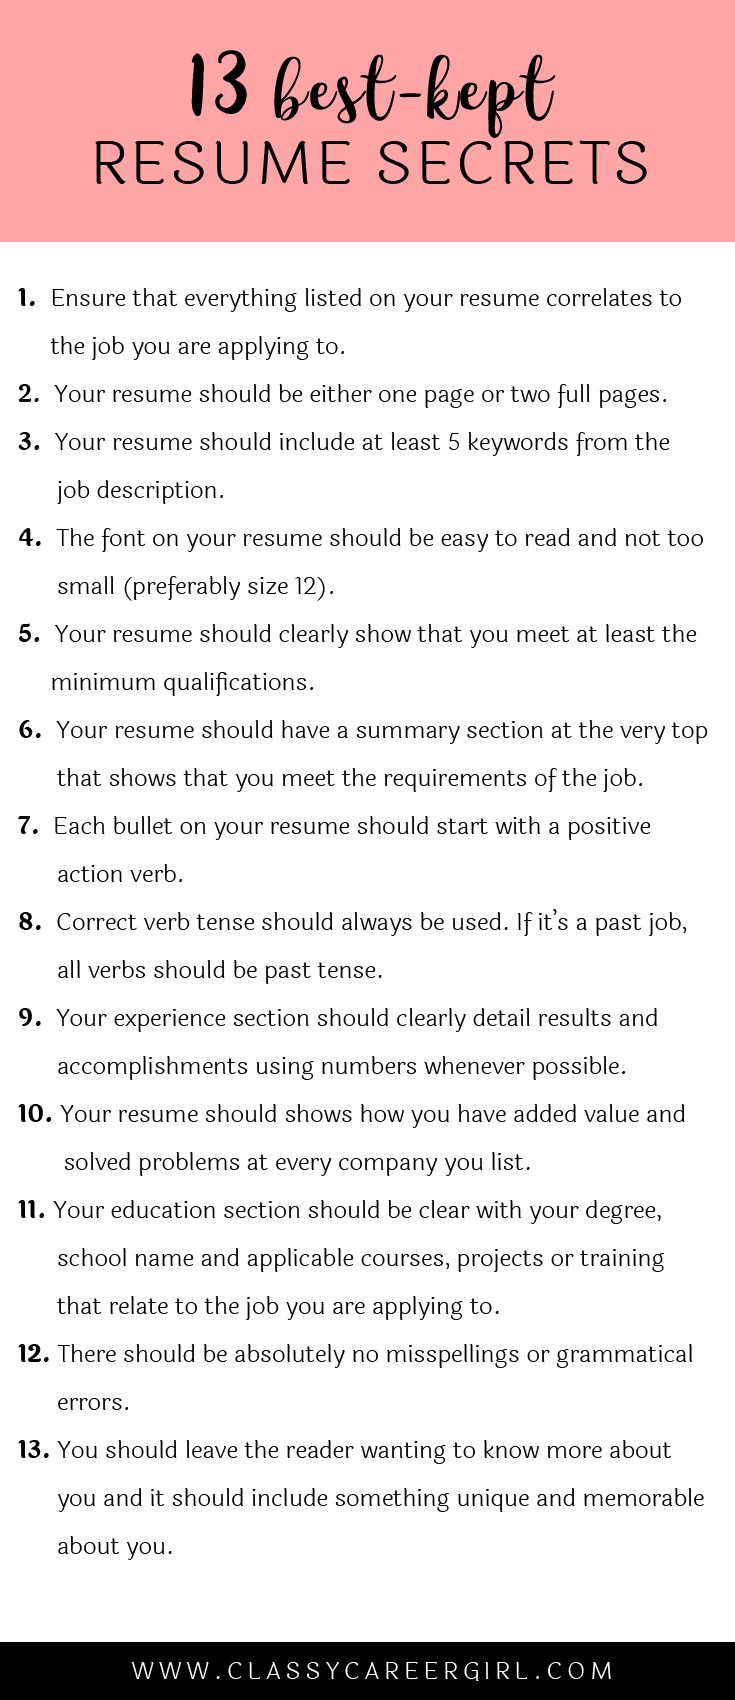 Opposenewapstandardsus  Unique  Ideas About Resume On Pinterest  Cv Format Resume Cv And  With Interesting Some Hiring Managers Will Toss Your Resume Out If You Dont Know These  With Astonishing What Is A Resume Cv Also Prep Cook Resume In Addition What Is The Difference Between A Resume And A Cv And Medical Billing Resume As Well As School Resume Additionally Cna Sample Resume From Pinterestcom With Opposenewapstandardsus  Interesting  Ideas About Resume On Pinterest  Cv Format Resume Cv And  With Astonishing Some Hiring Managers Will Toss Your Resume Out If You Dont Know These  And Unique What Is A Resume Cv Also Prep Cook Resume In Addition What Is The Difference Between A Resume And A Cv From Pinterestcom